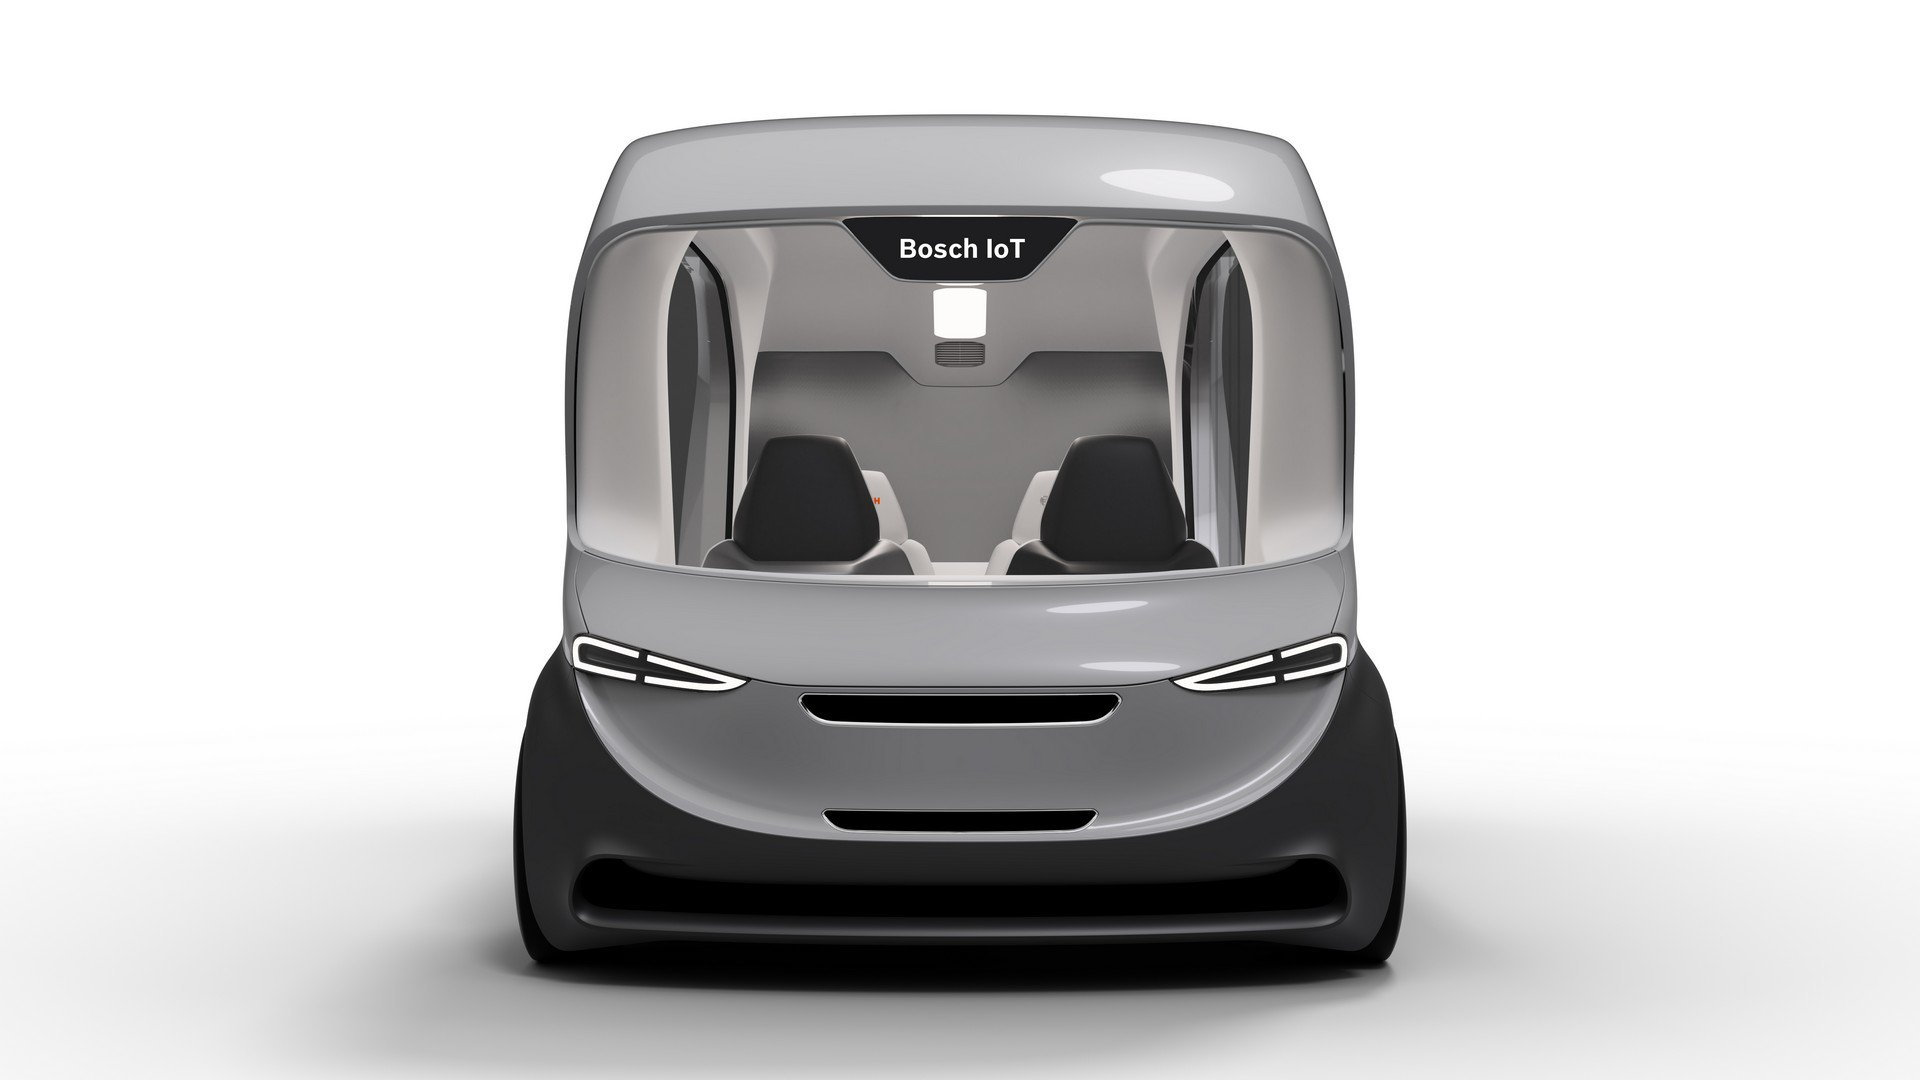 Bosch self-driving shuttle concept